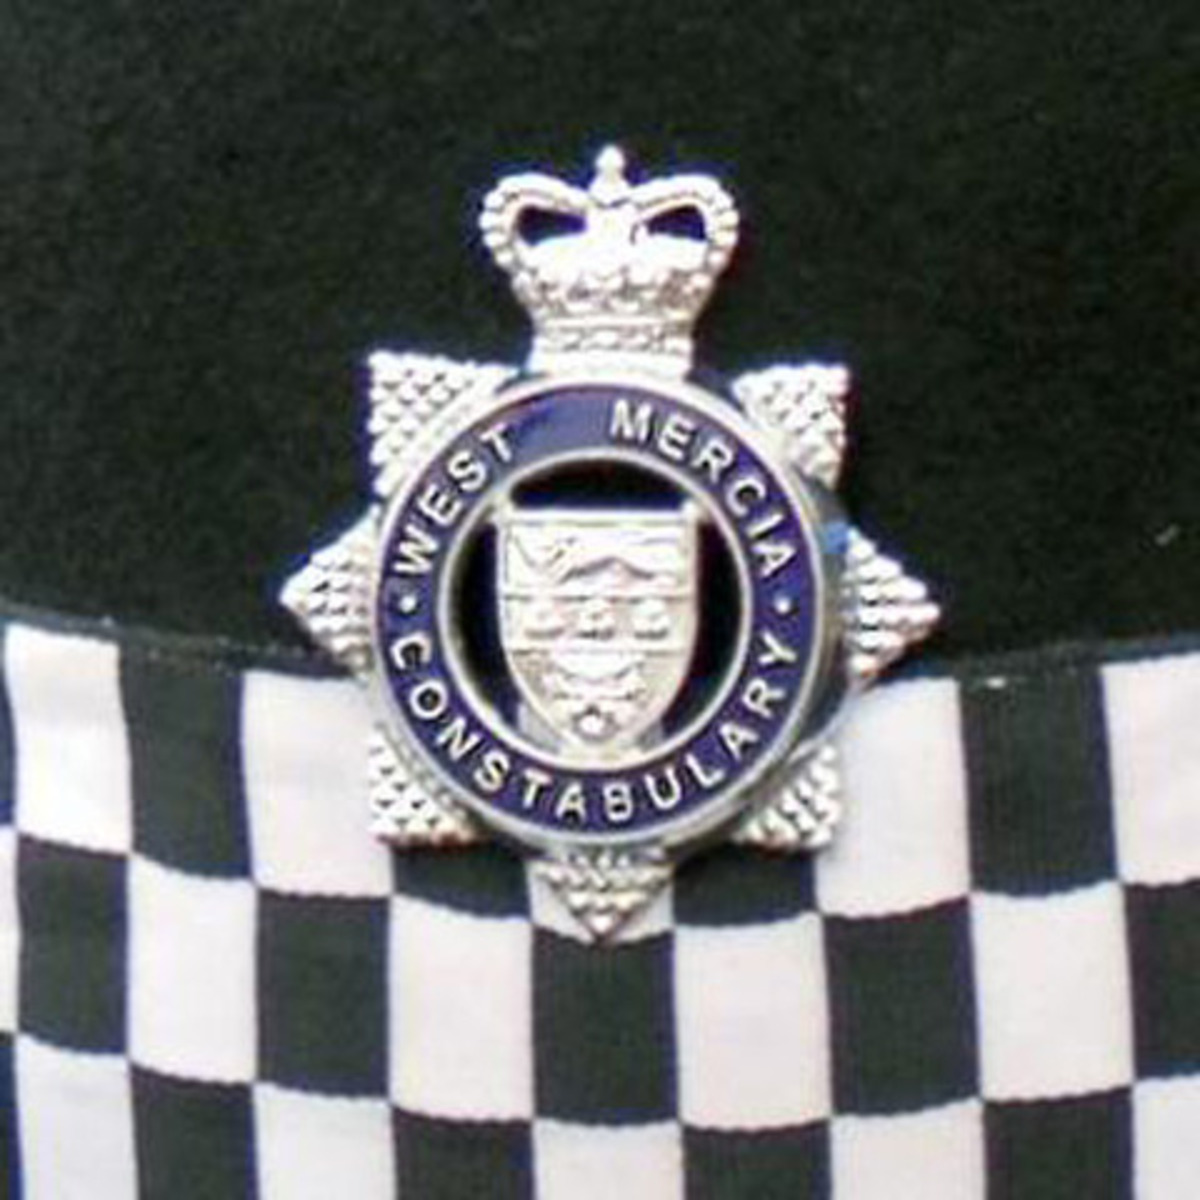 Travelling gangs are targeted by police